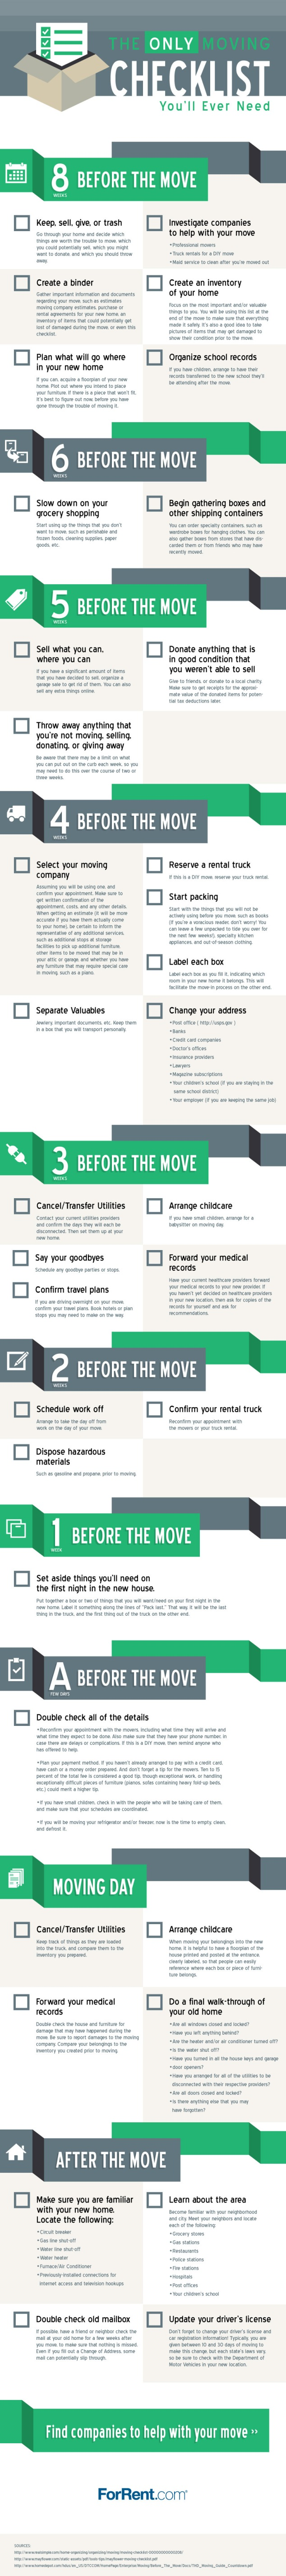 The-Moving-Checklist-Final-1-